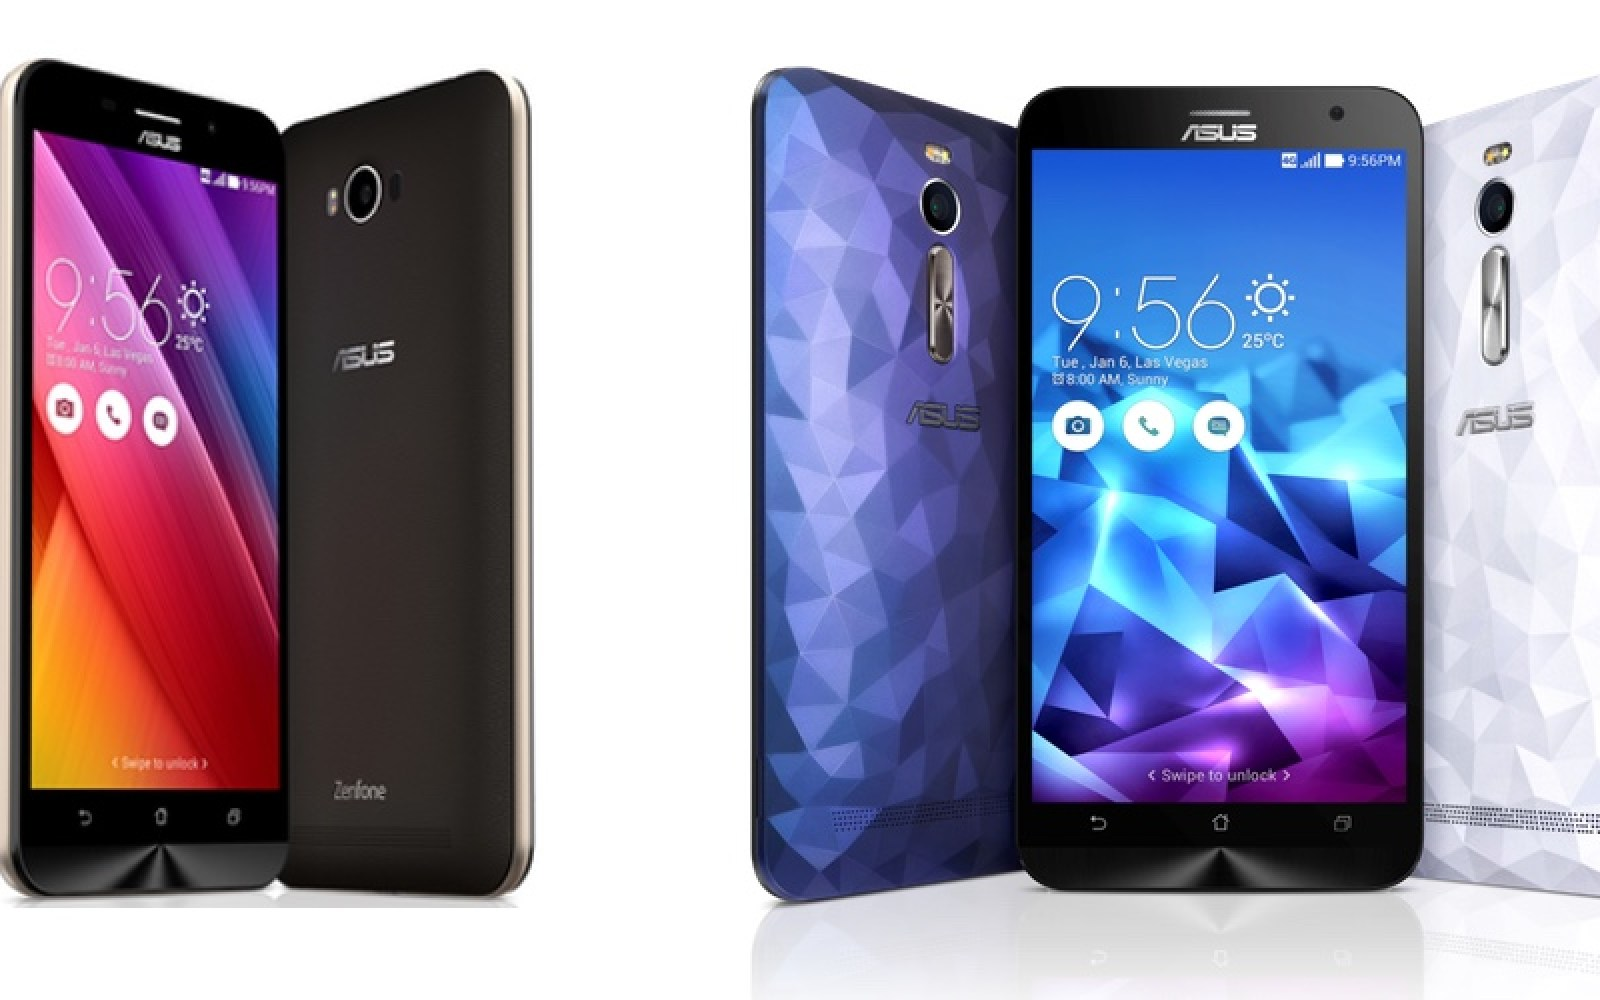 Asus announces a slew of new phones, including ZenFone 2 Deluxe and 5,000mAh ZenFone Max